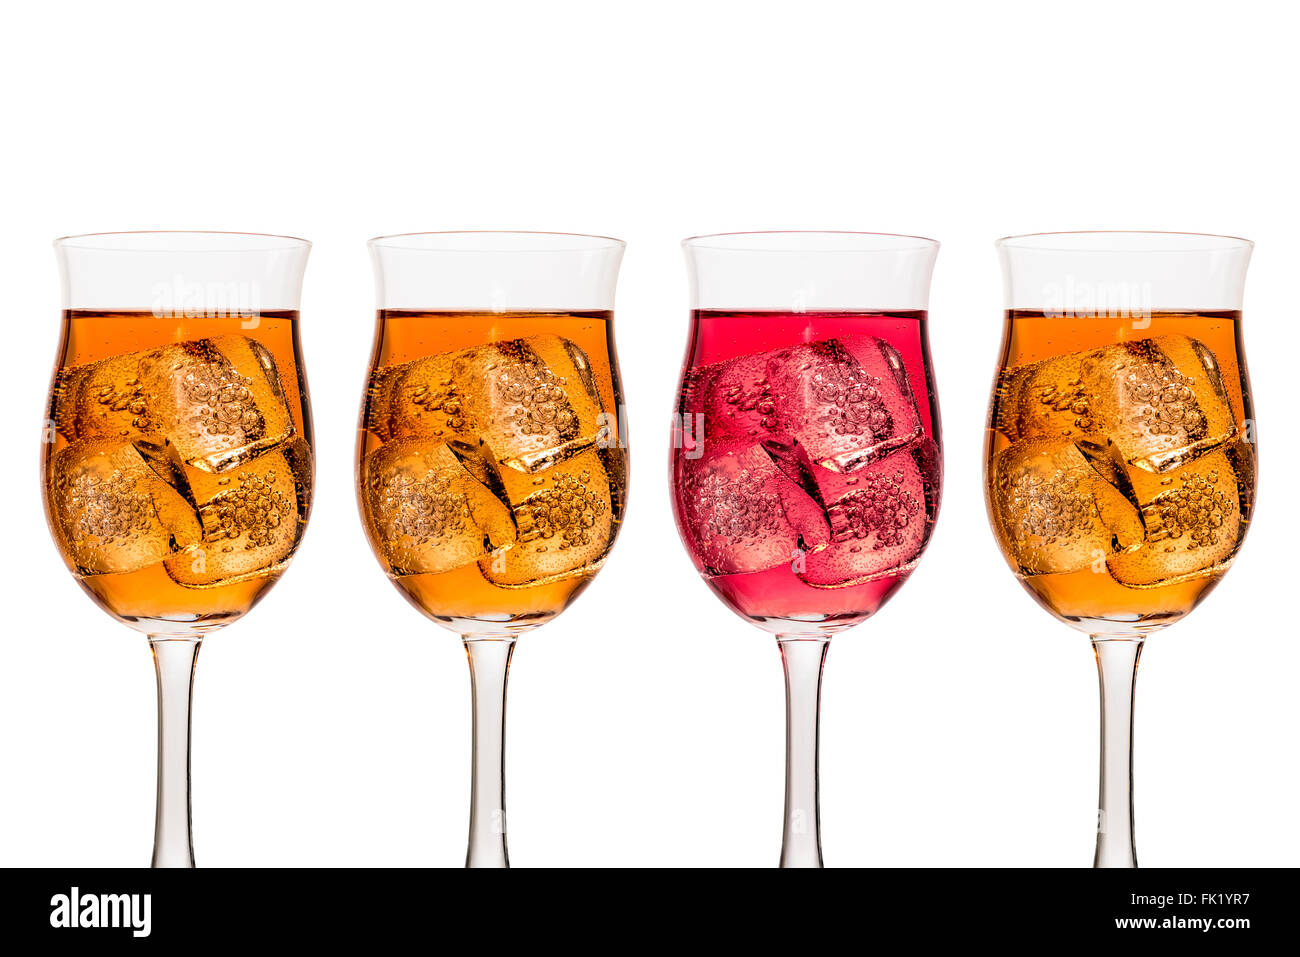 Four tall wine glasses containing amber and red coloured liquid wine and ice cubes shown with three amber and one - Stock Image